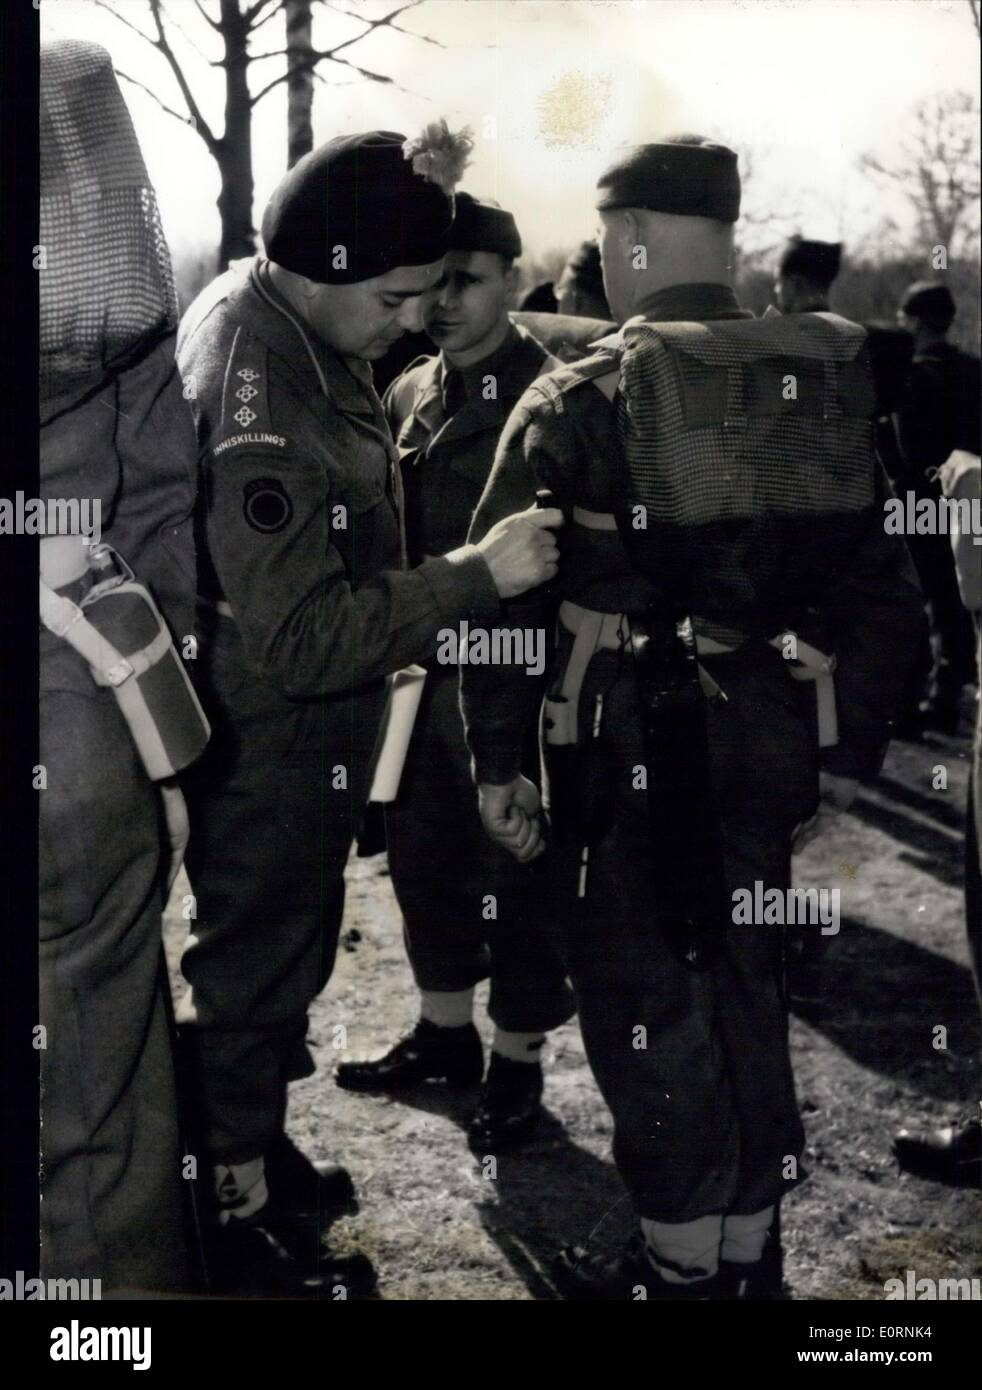 Mar. 24, 1960 - Lode Star Manoeuvre: The British troops in Berlin are making at the moment the 'Lode Star Manoeuvre''. Long marches, ''hard life'' in the woods, agression etc. are on the programme of the manoeuvre. Photo shows a Captain of the British Army inspecting the guns. - Stock Image